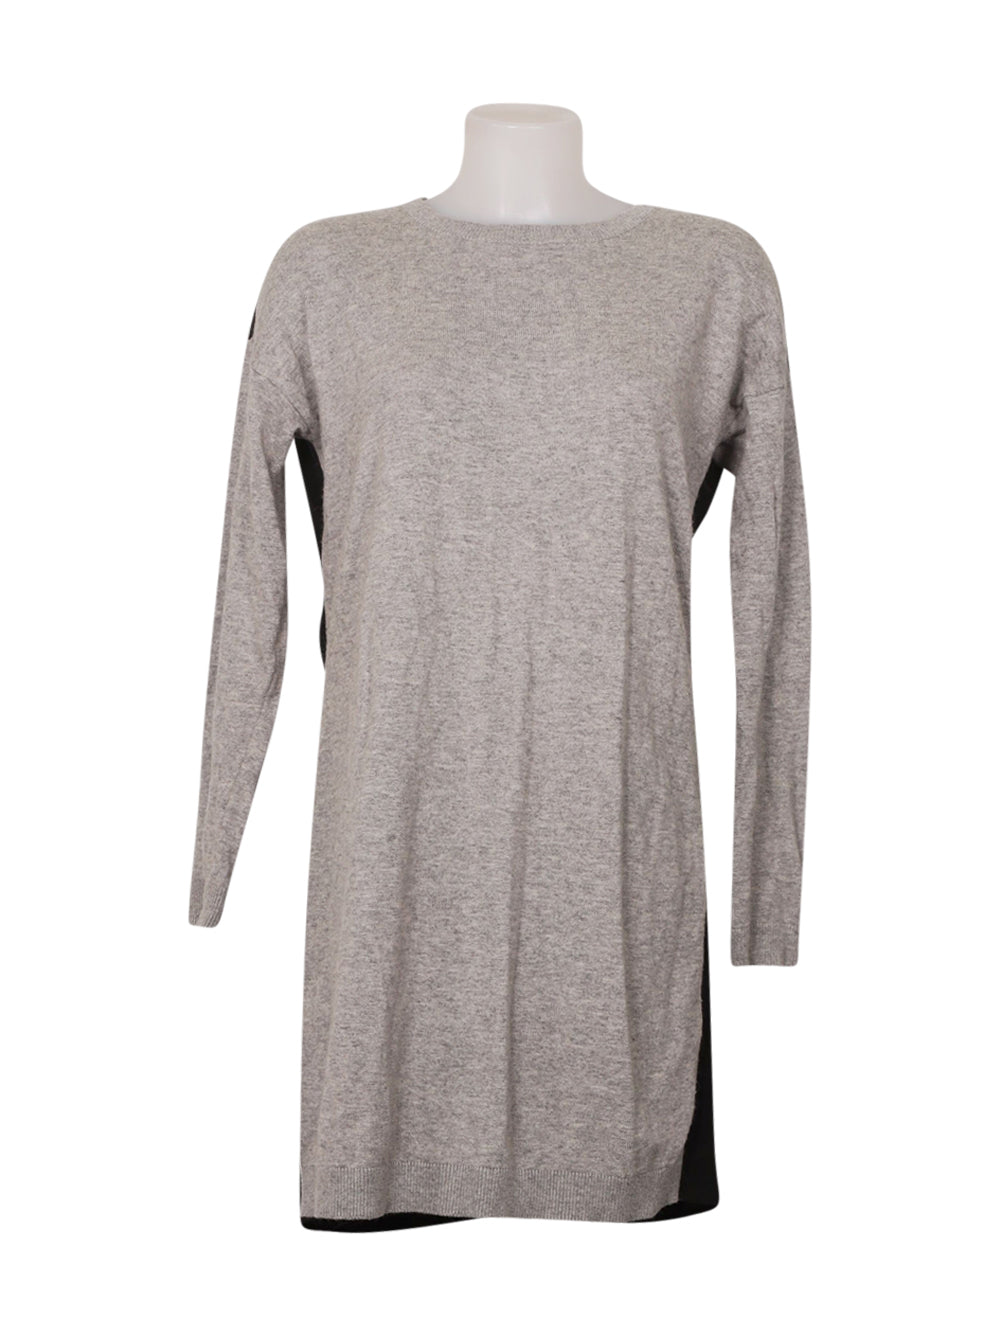 Front photo of Preloved Asos Grey Woman's dress - size 10/M